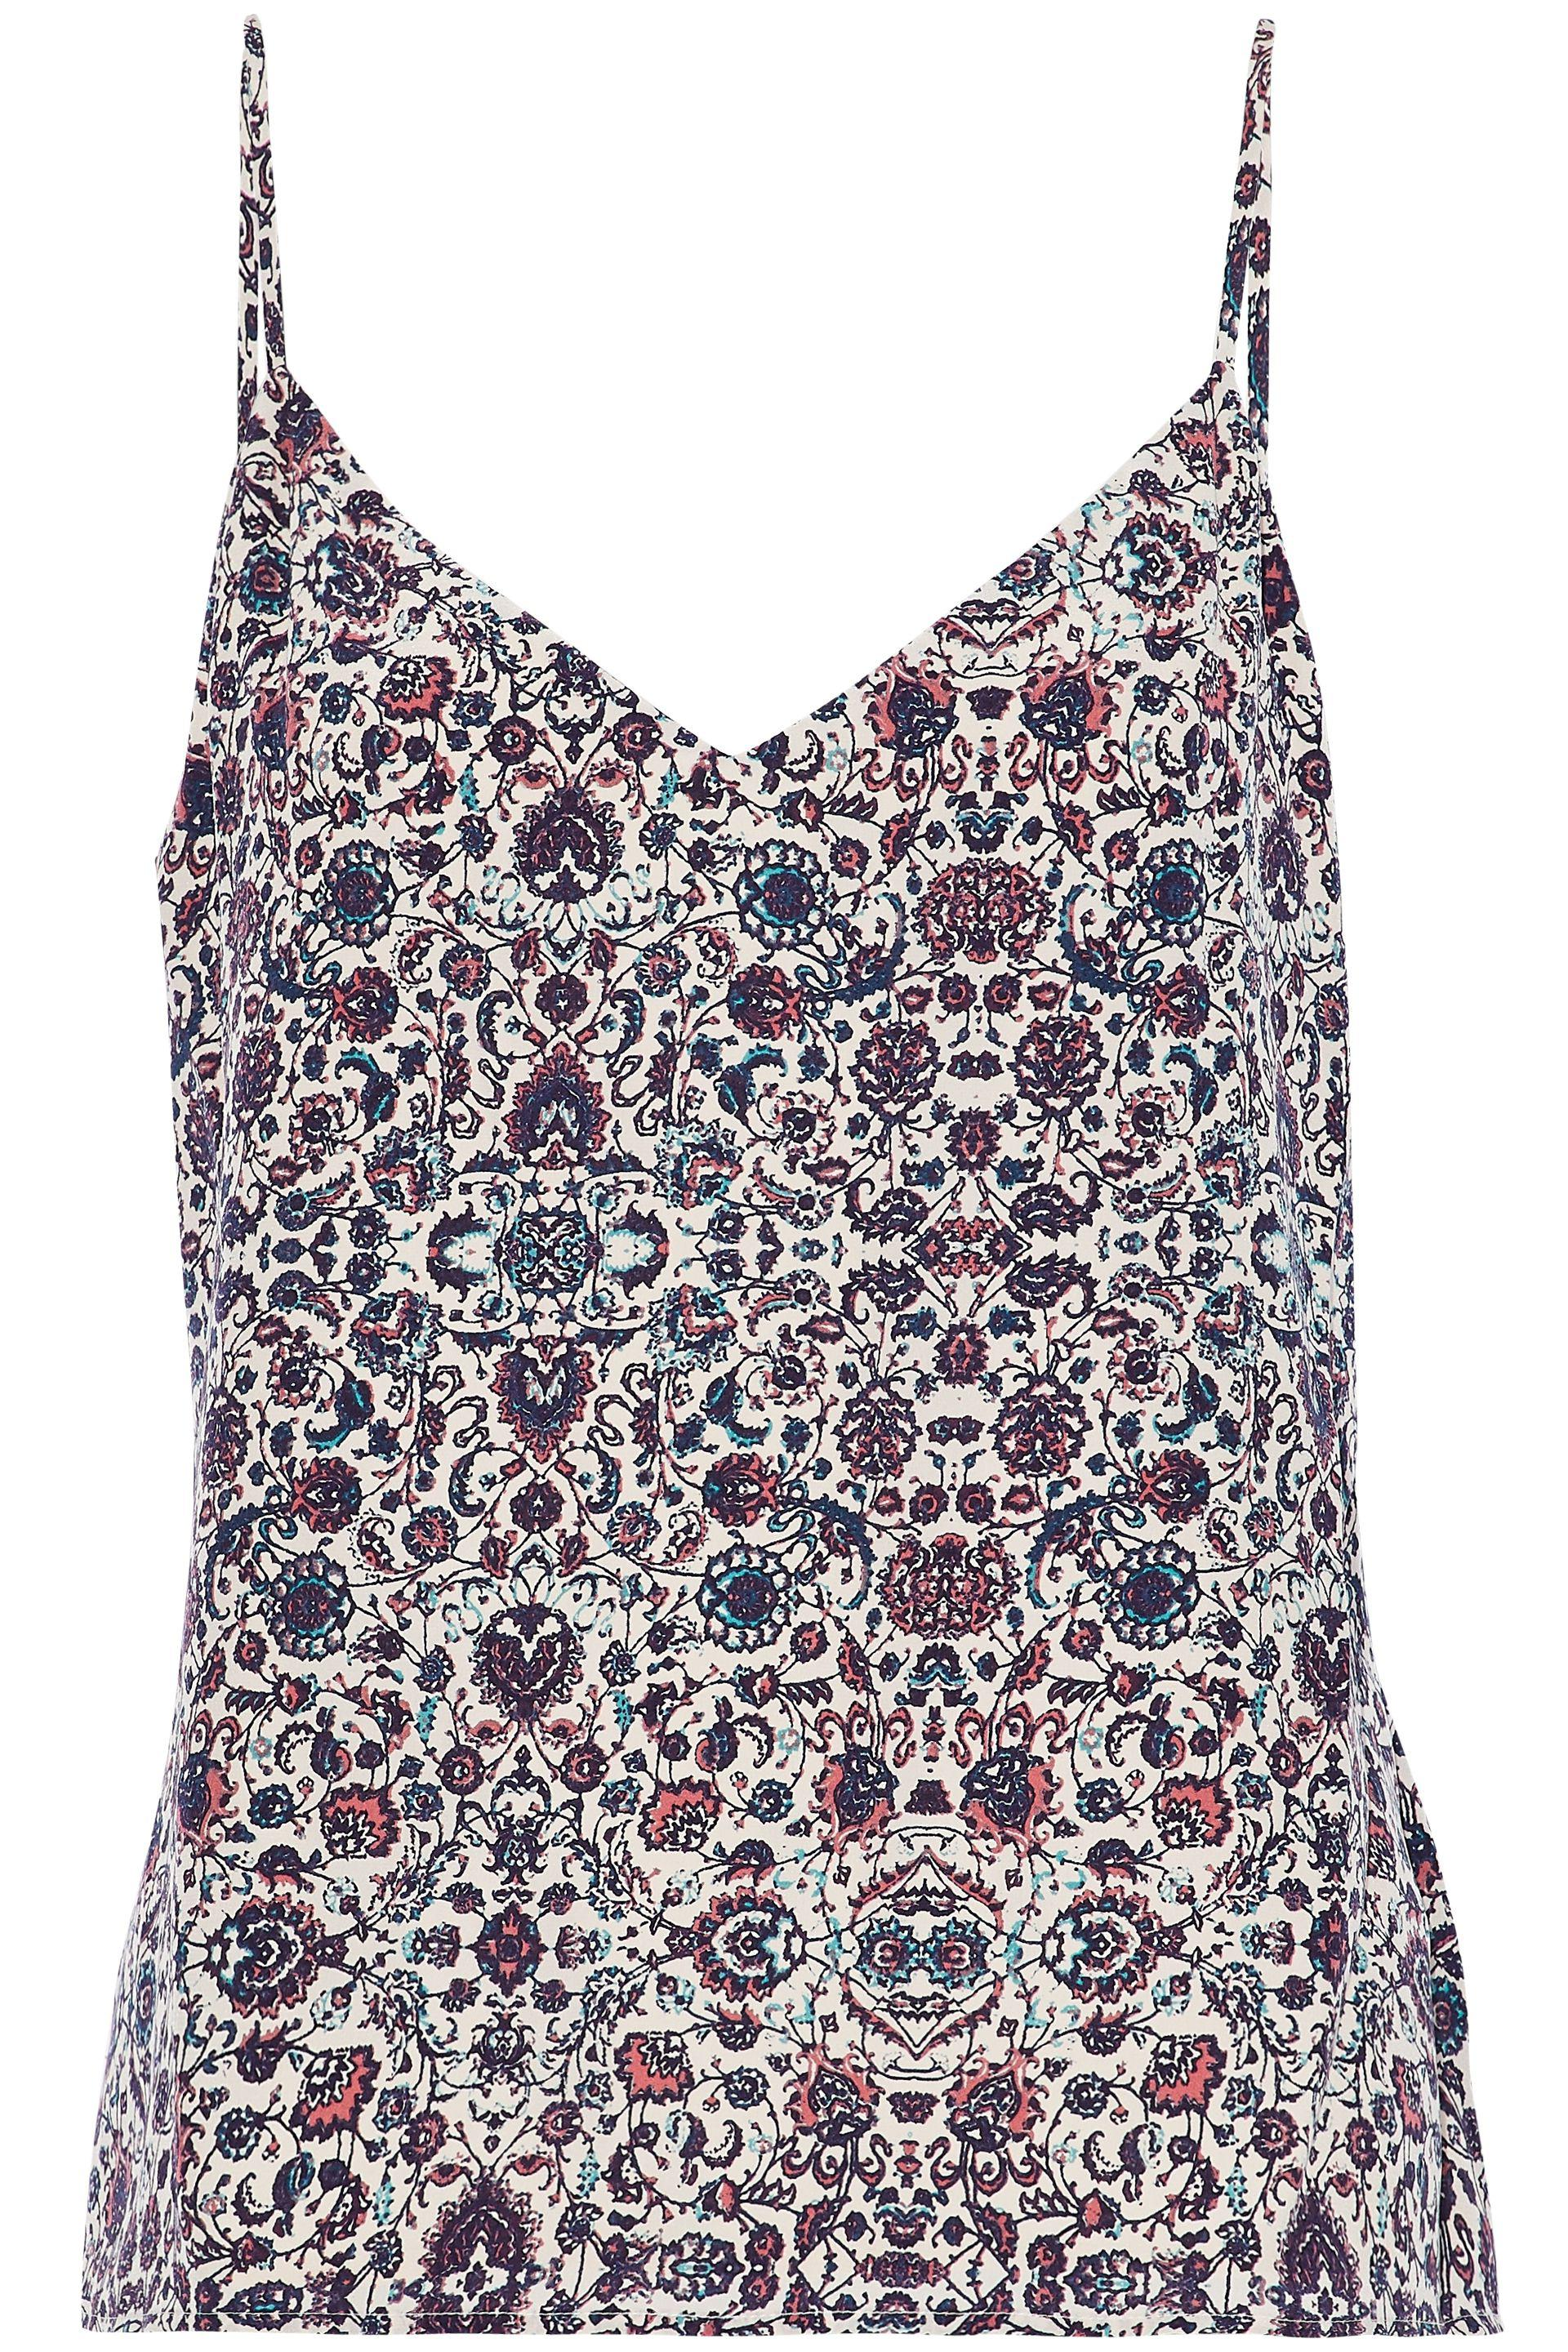 Clearance The Cheapest Prices Sale Online Lagence Woman Printed Silk Crepe De Chine Camisole Brick Size L L'agence Free Shipping Best Seller Big Sale Cheap Online Cheap Sale Outlet Store dO5kx